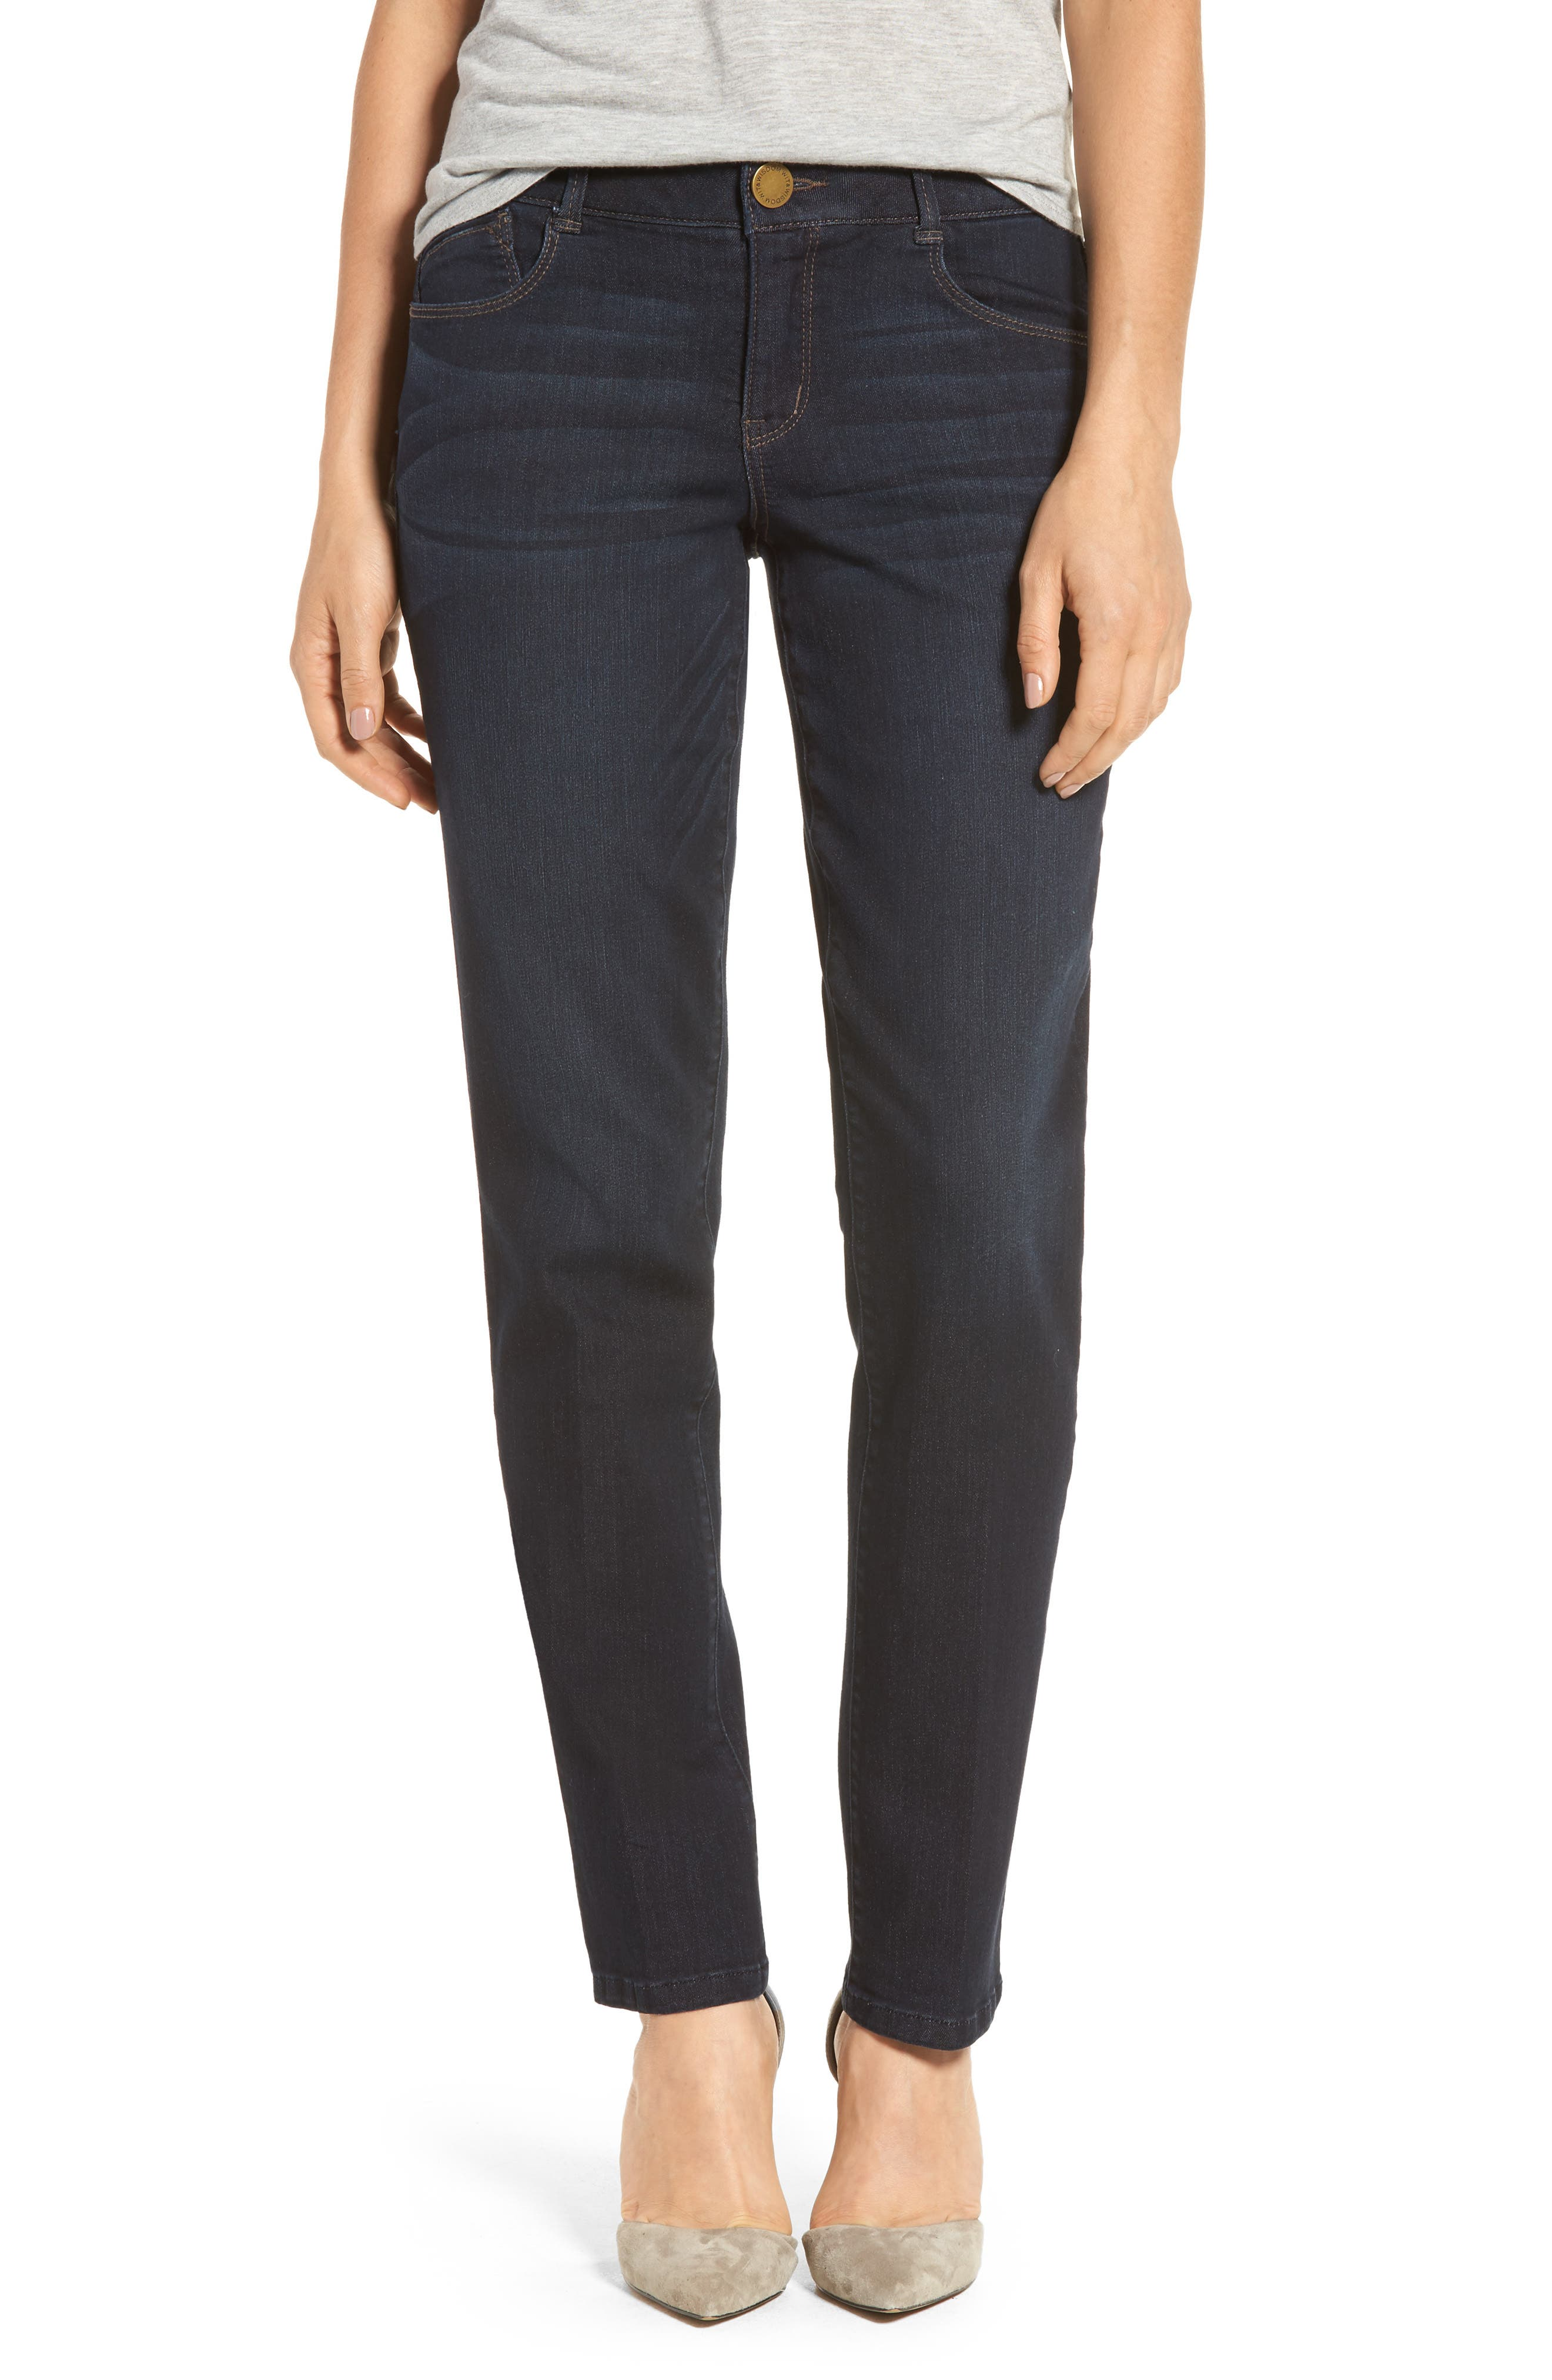 WIT & WISDOM, Ab-solution Straight Leg Jeans, Main thumbnail 1, color, INDIGO